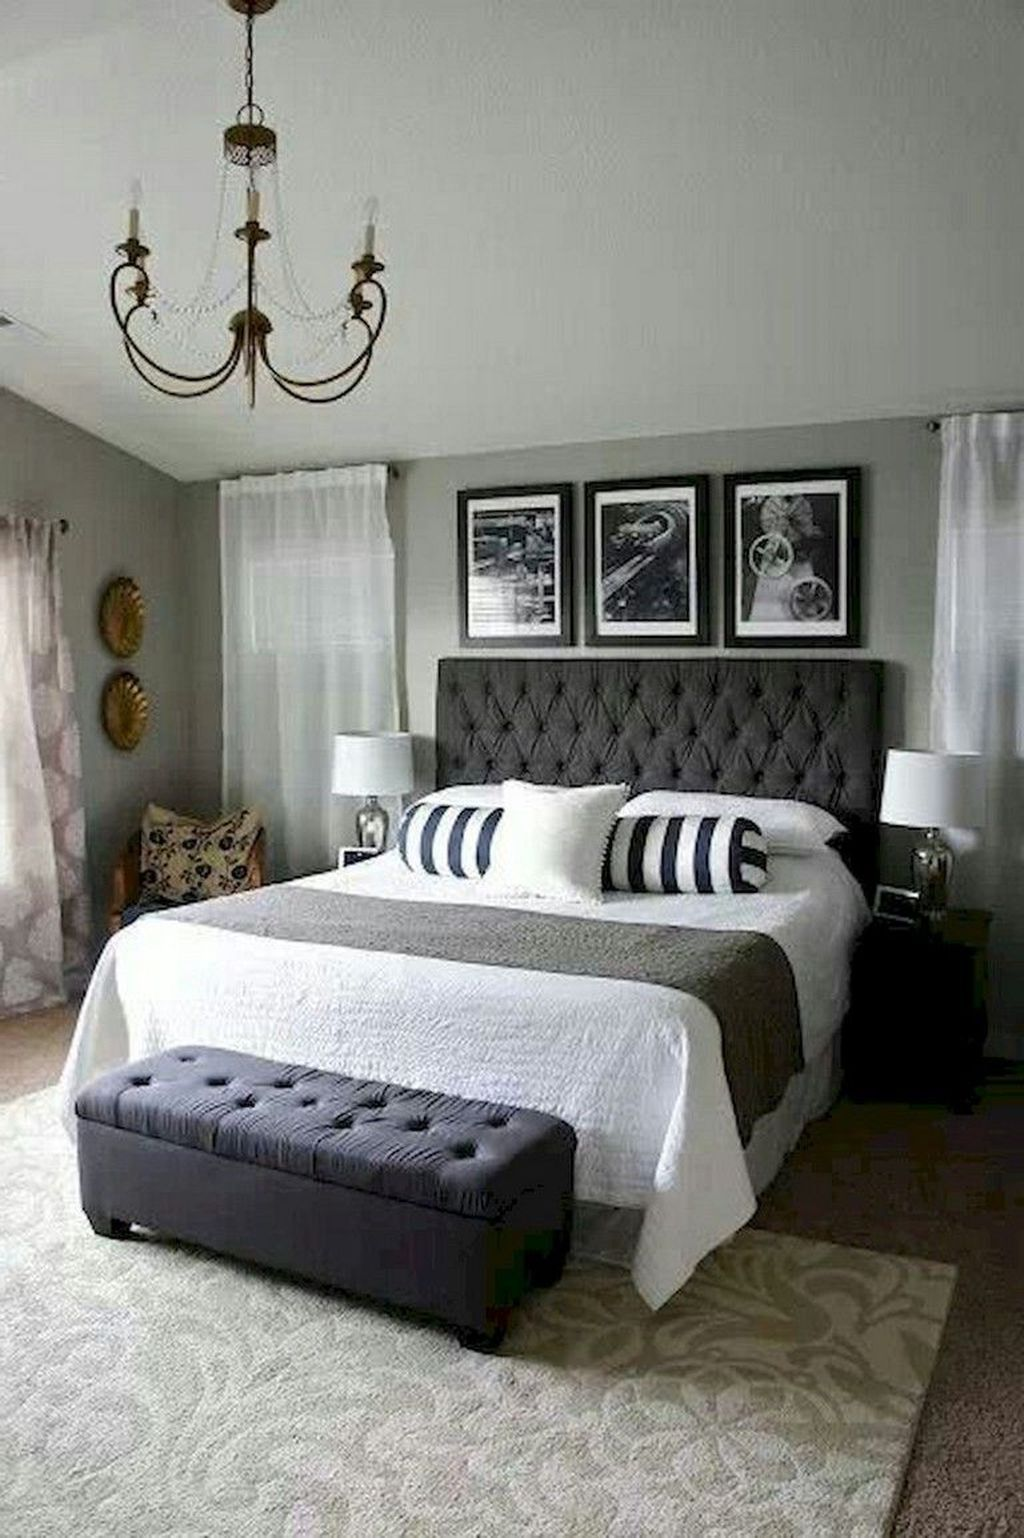 The Best Small Master Bedroom Design Ideas WIth Farmhouse Style 35